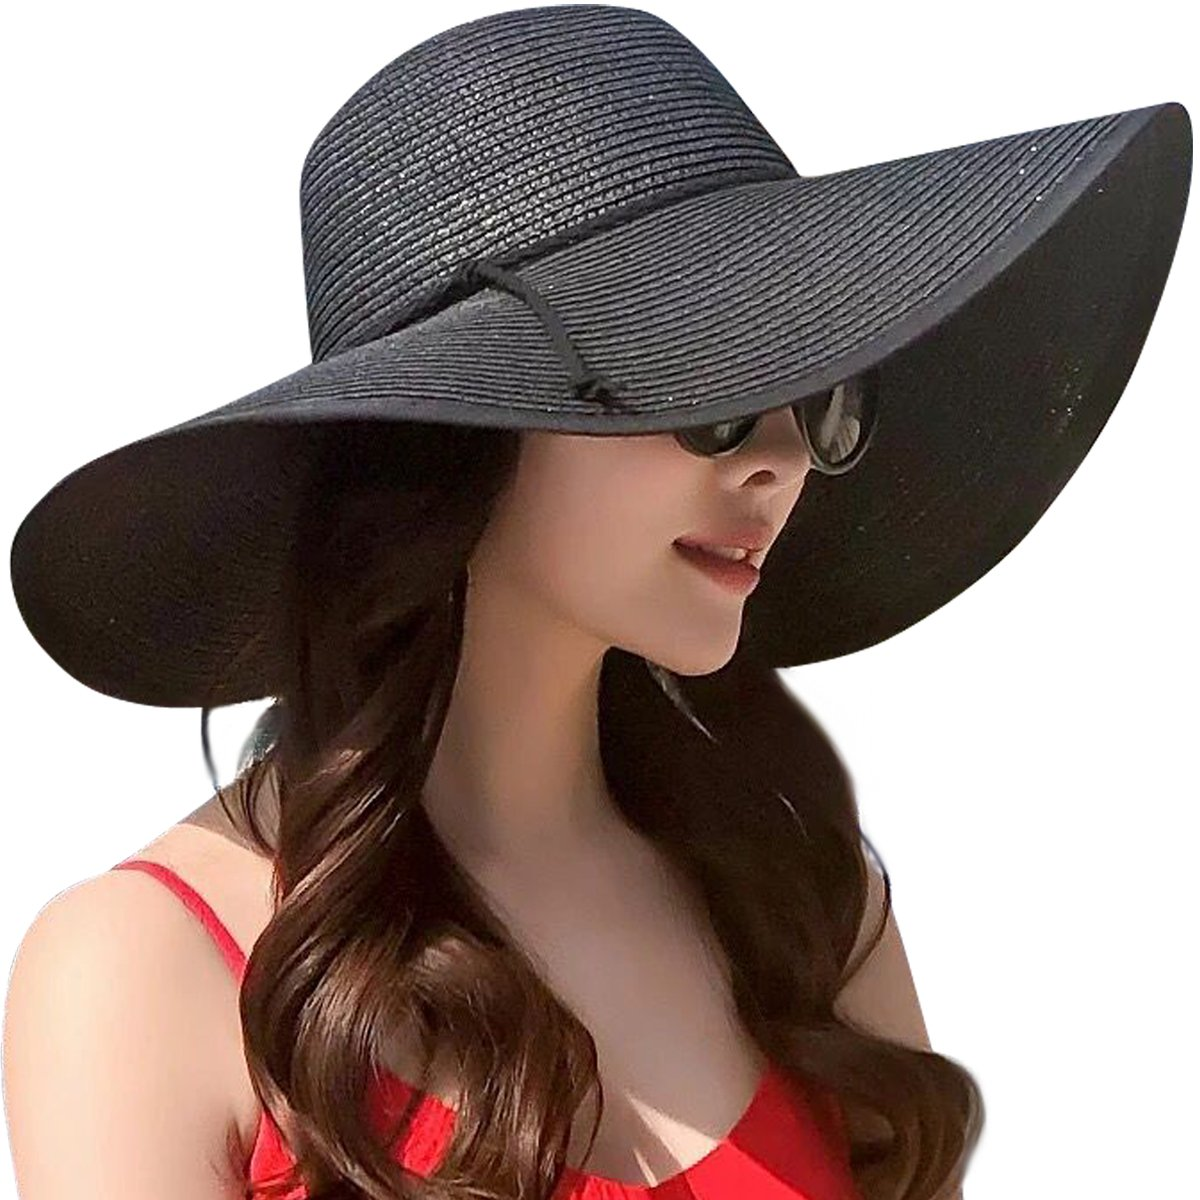 Lanzom Womens Wide Brim Straw Hat Floppy Foldable Roll up Cap Beach Sun Hat UPF 50+ (Style B-Black) by Lanzom